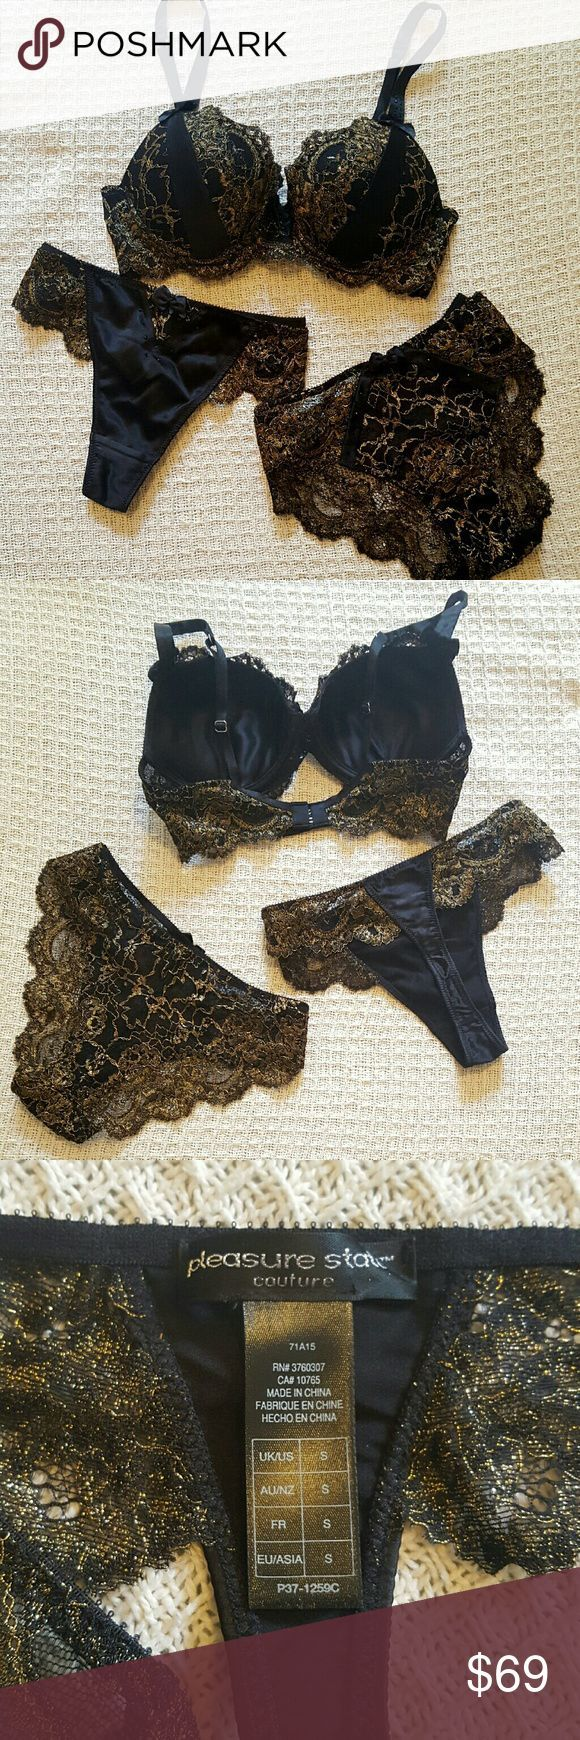 Stunning Couture Black/Gold Lingerie Set Couture Lingerie Set in elegant black satin and gold lace. Gorgeous black crystal details. Fully lined. NWOT. Pleasure State Intimates & Sleepwear Bras - lingerie fine, lingerie catalog, ensemble lingerie *sponsored https://www.pinterest.com/lingerie_yes/ https://www.pinterest.com/explore/lingerie/ https://www.pinterest.com/lingerie_yes/bbw-lingerie/ http://us.topshop.com/en/tsus/category/clothing-70483/lingerie-2313852